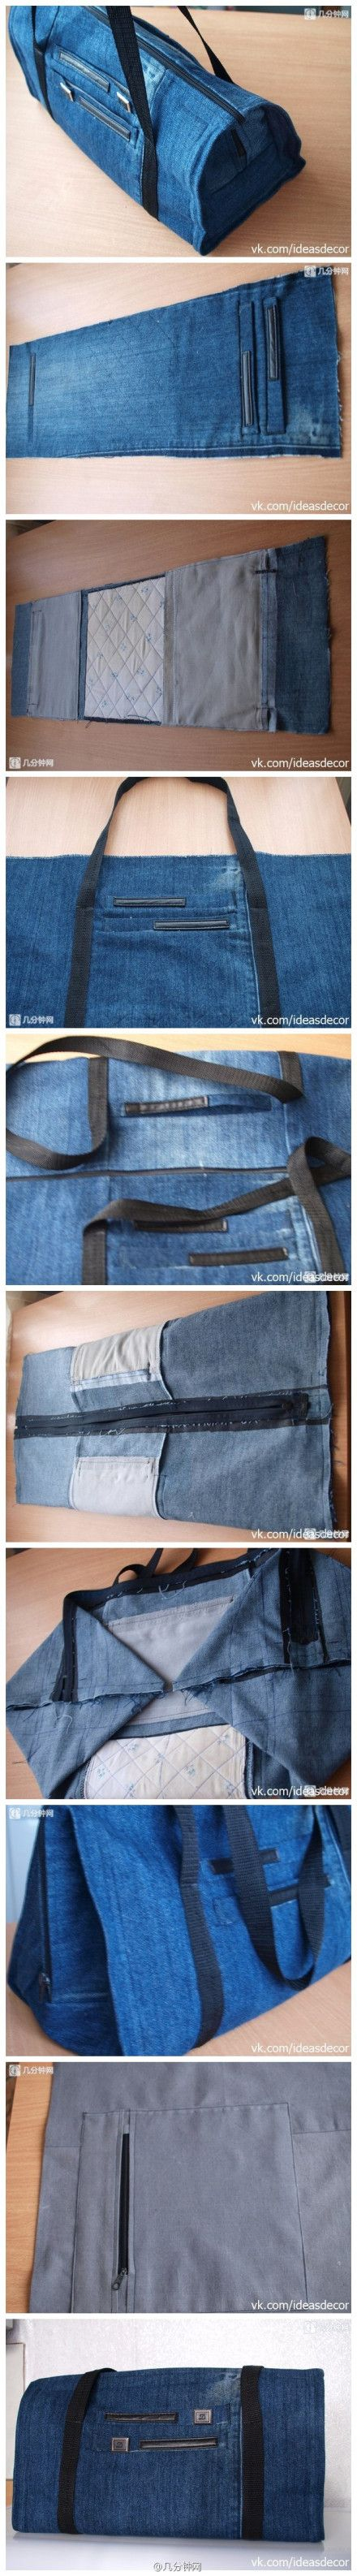 Bags from Denim